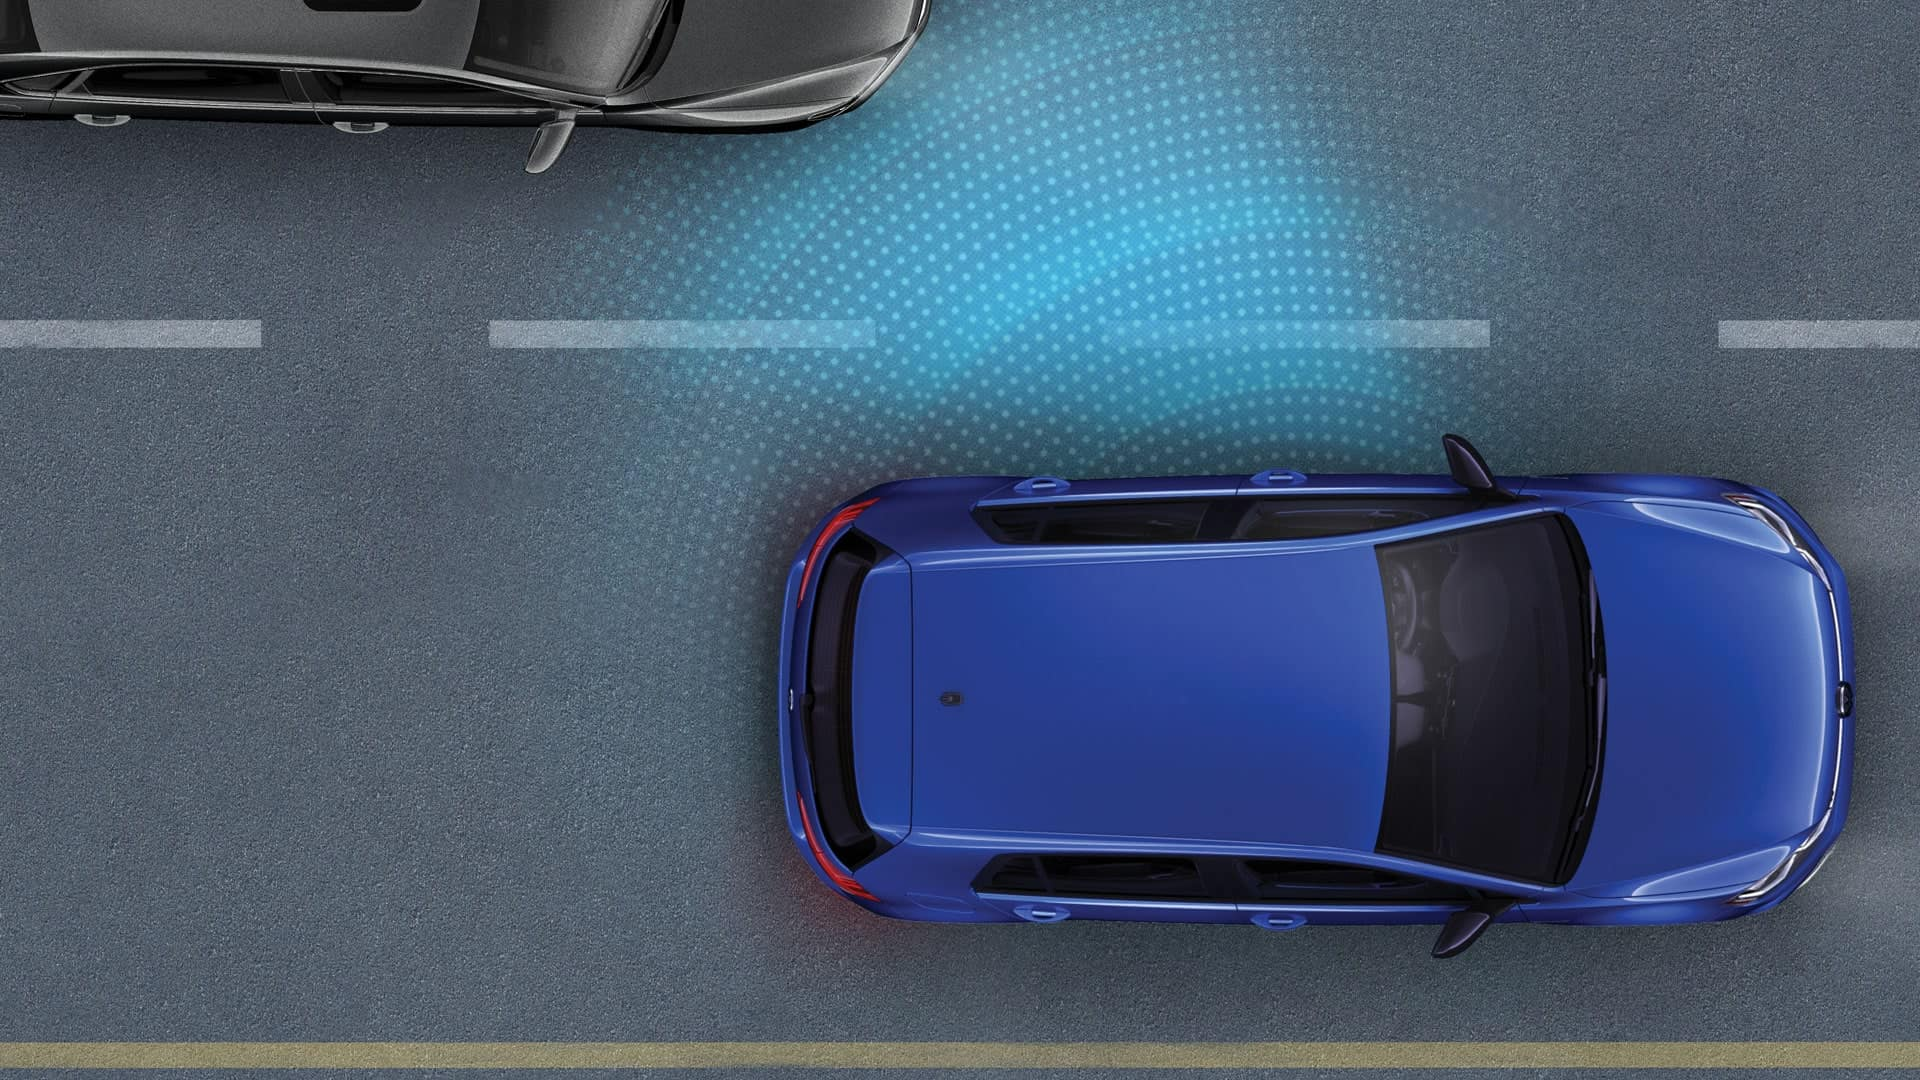 Infographic of the 2019 VW Golf R blind spot detection feature